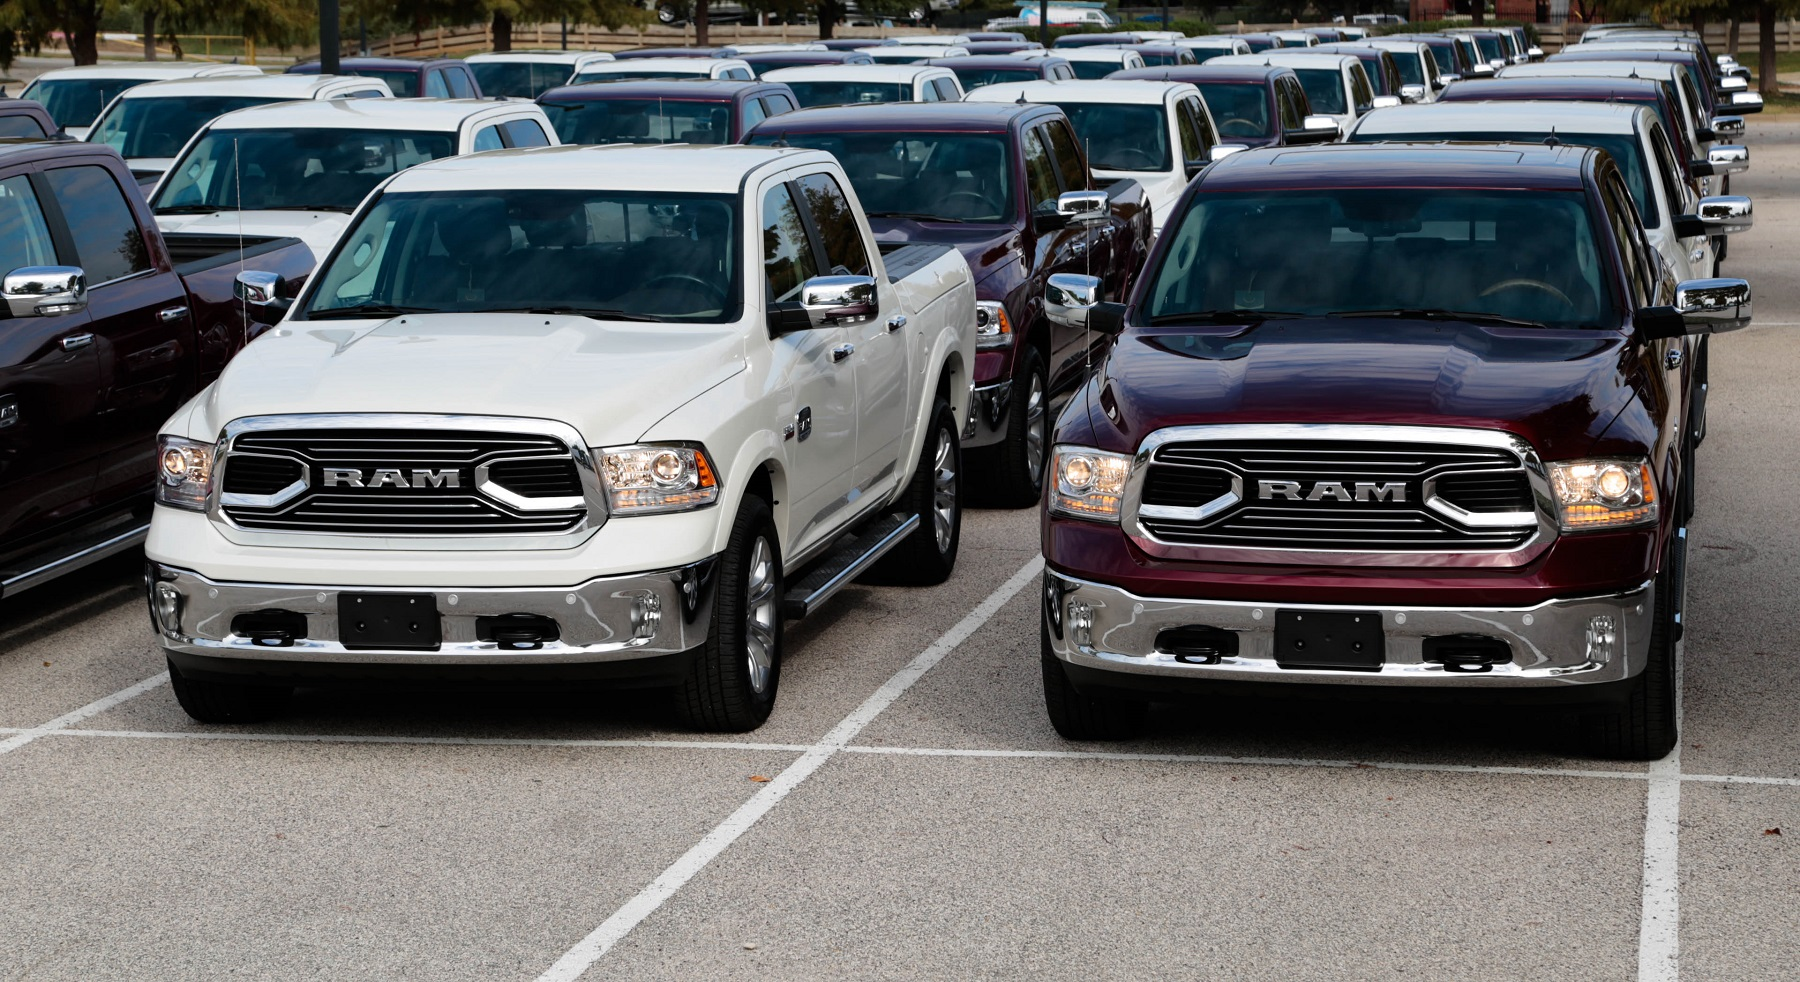 Manufacturer photo: Ram builds long-lasting pickups and the Ram 1500 boasts numerous segment-exclusive features